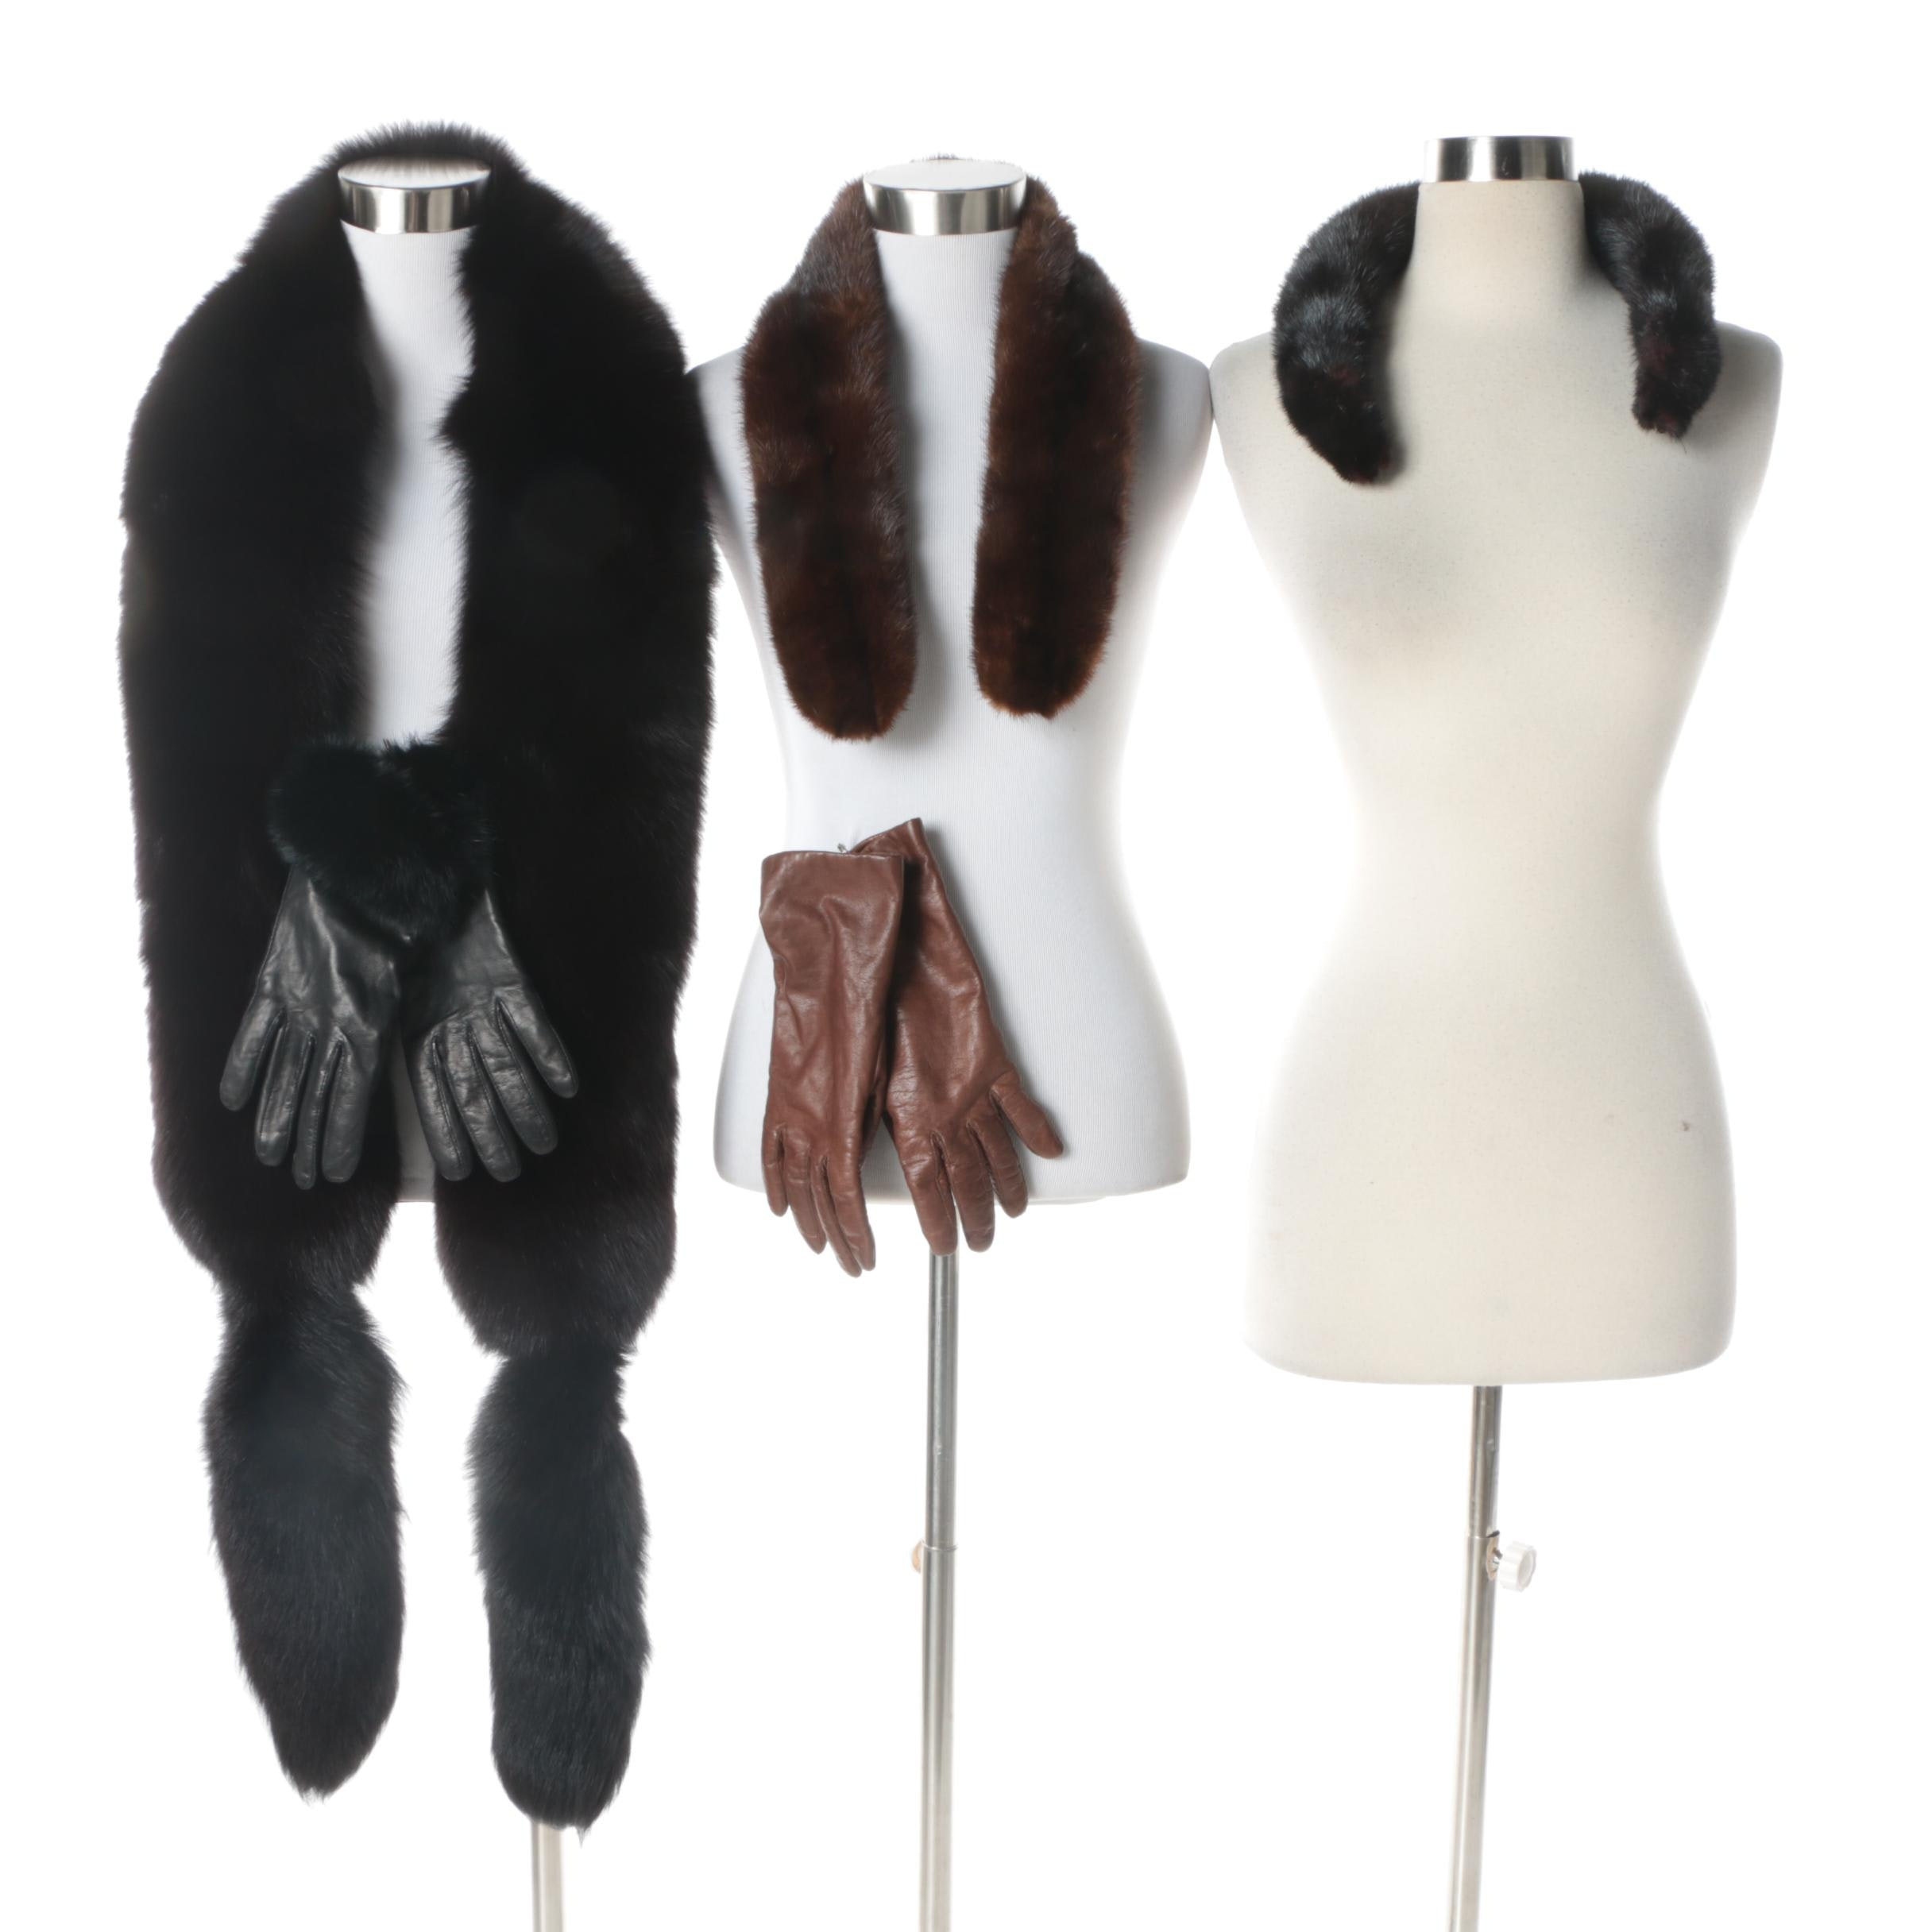 Vintage Fox Fur Stole, Mink Fur Collars and Leather Gloves